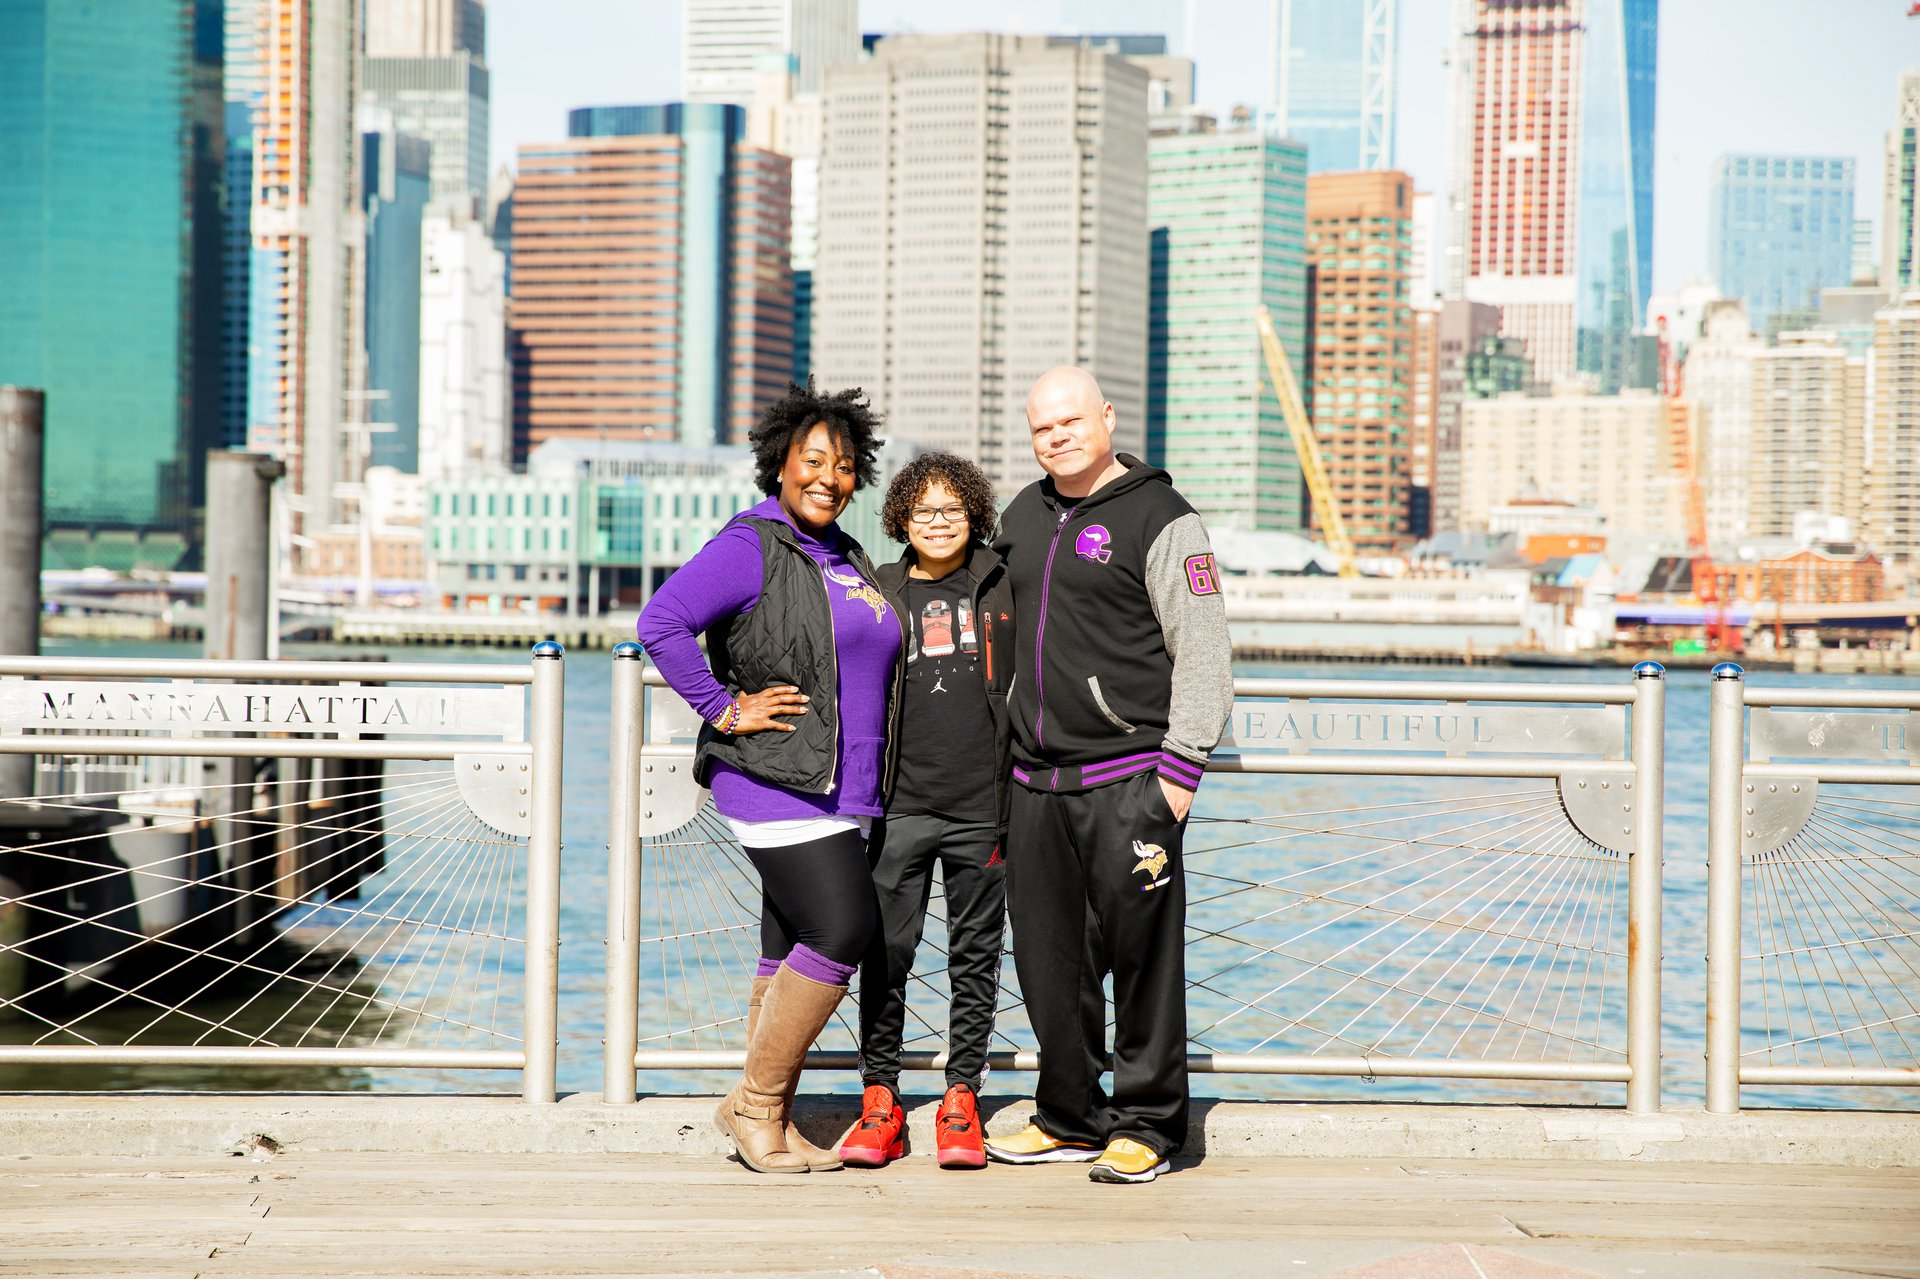 Flytographer Travel Story - The Walters do New York